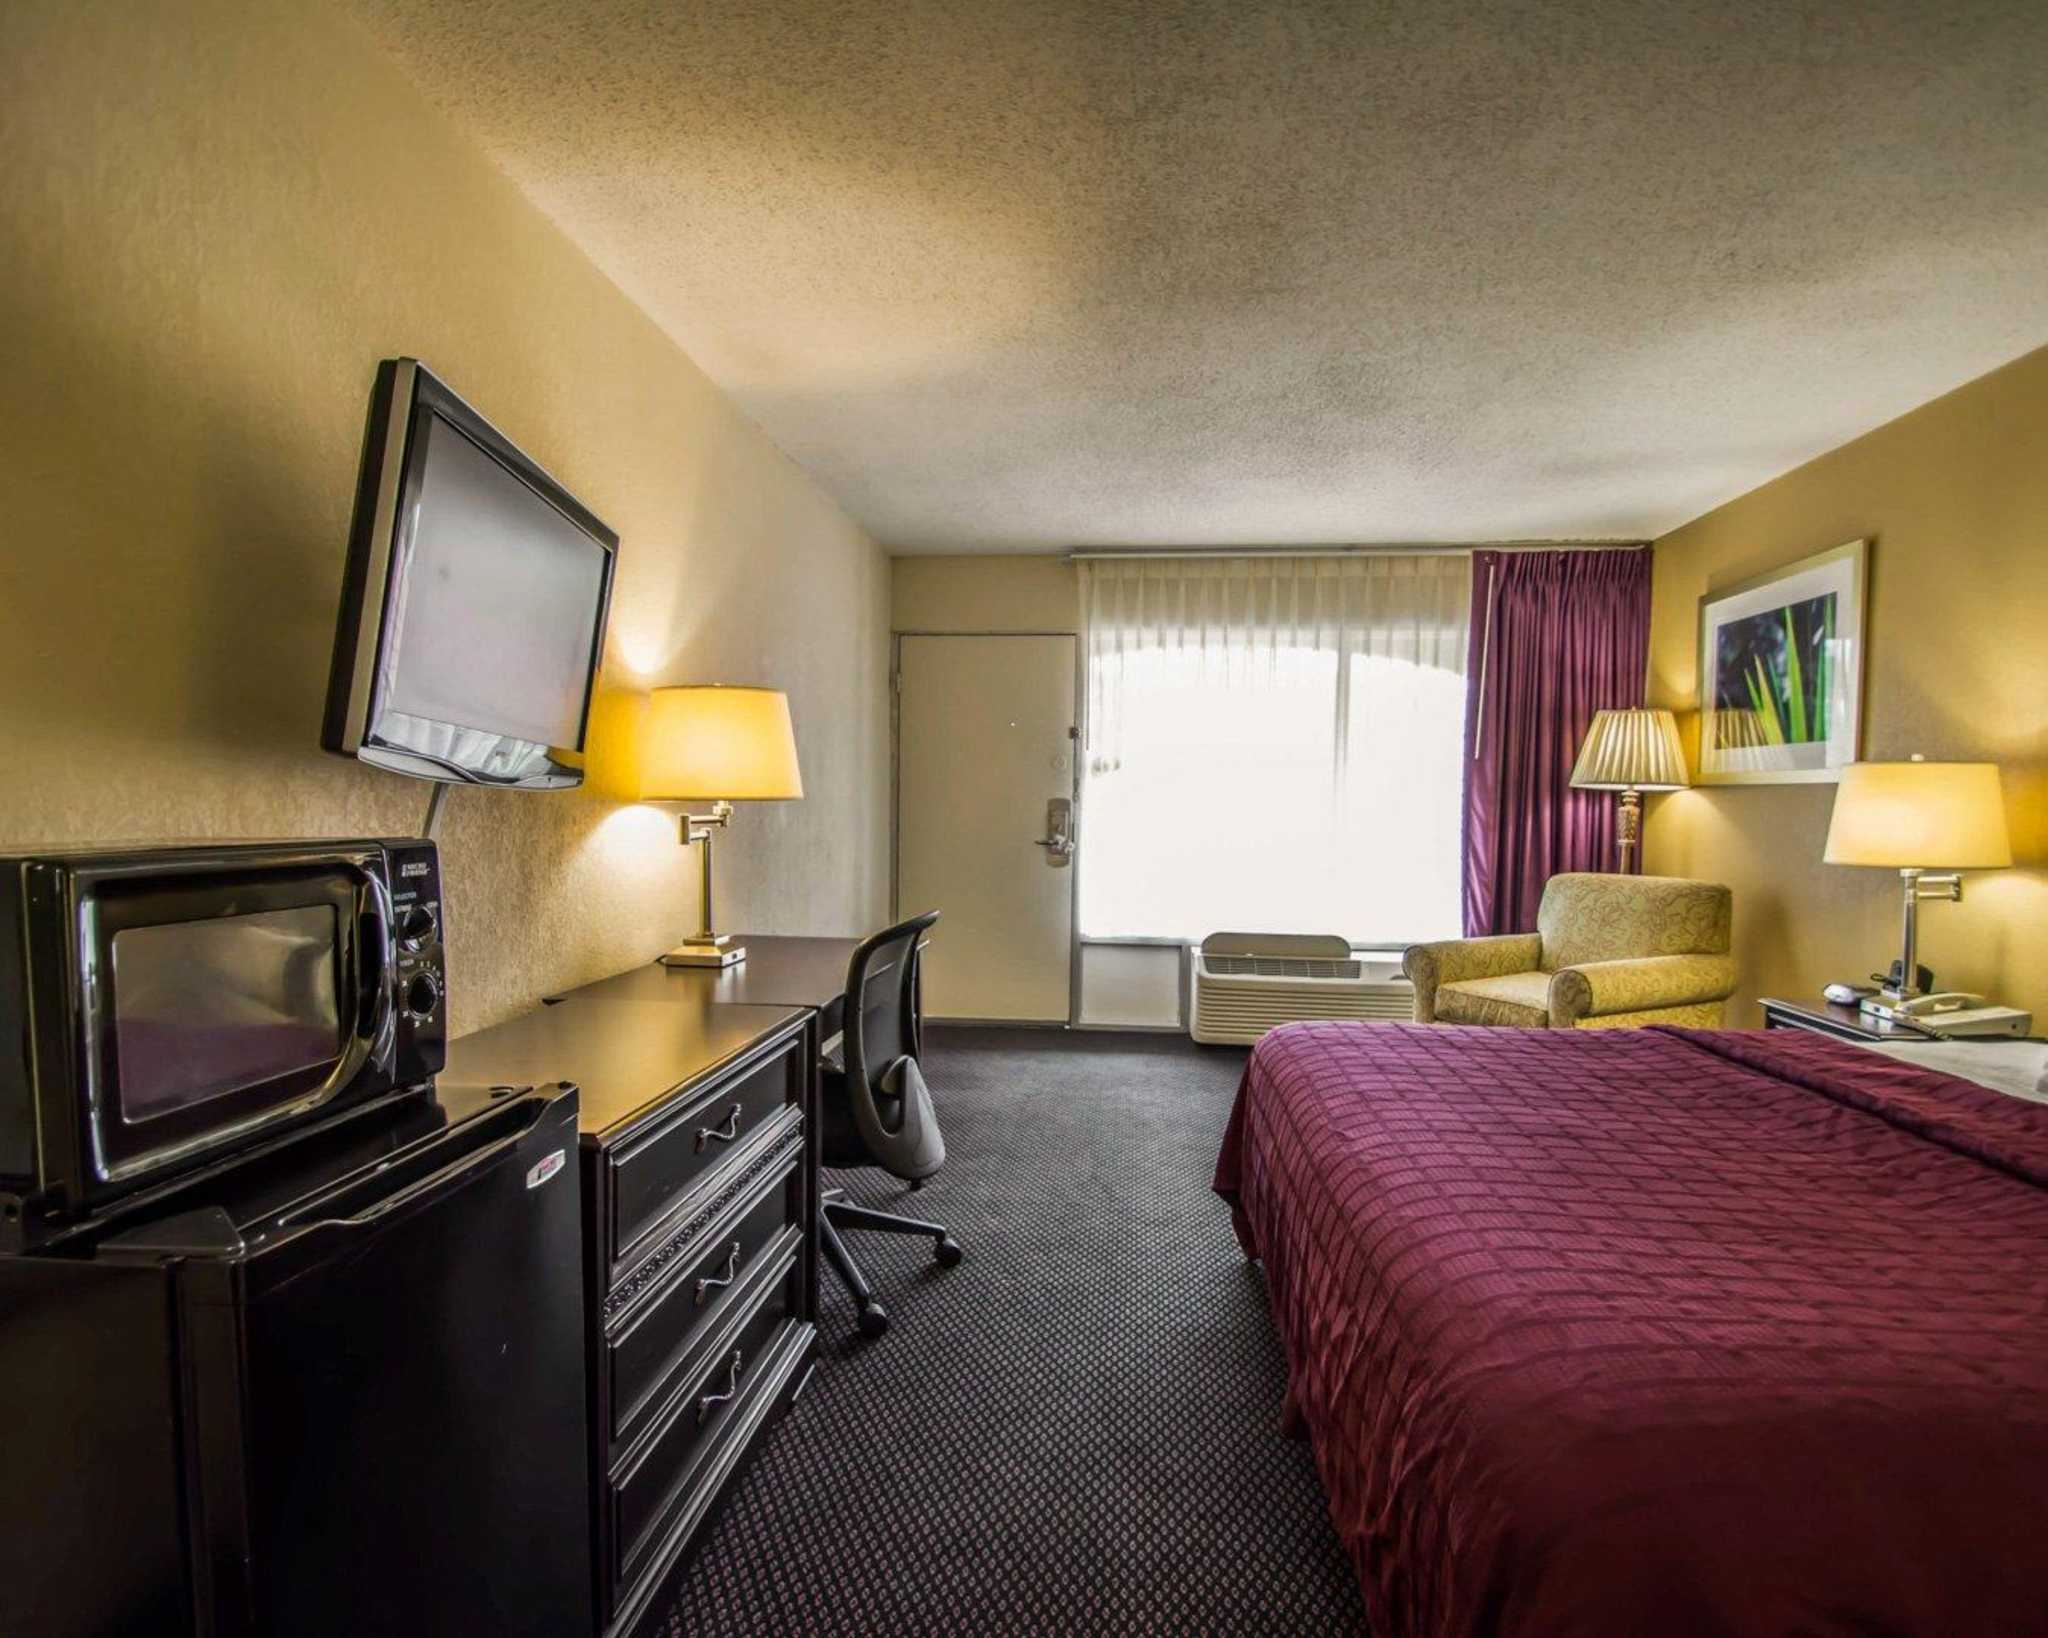 Quality Inn I-75 at Exit 399 image 14